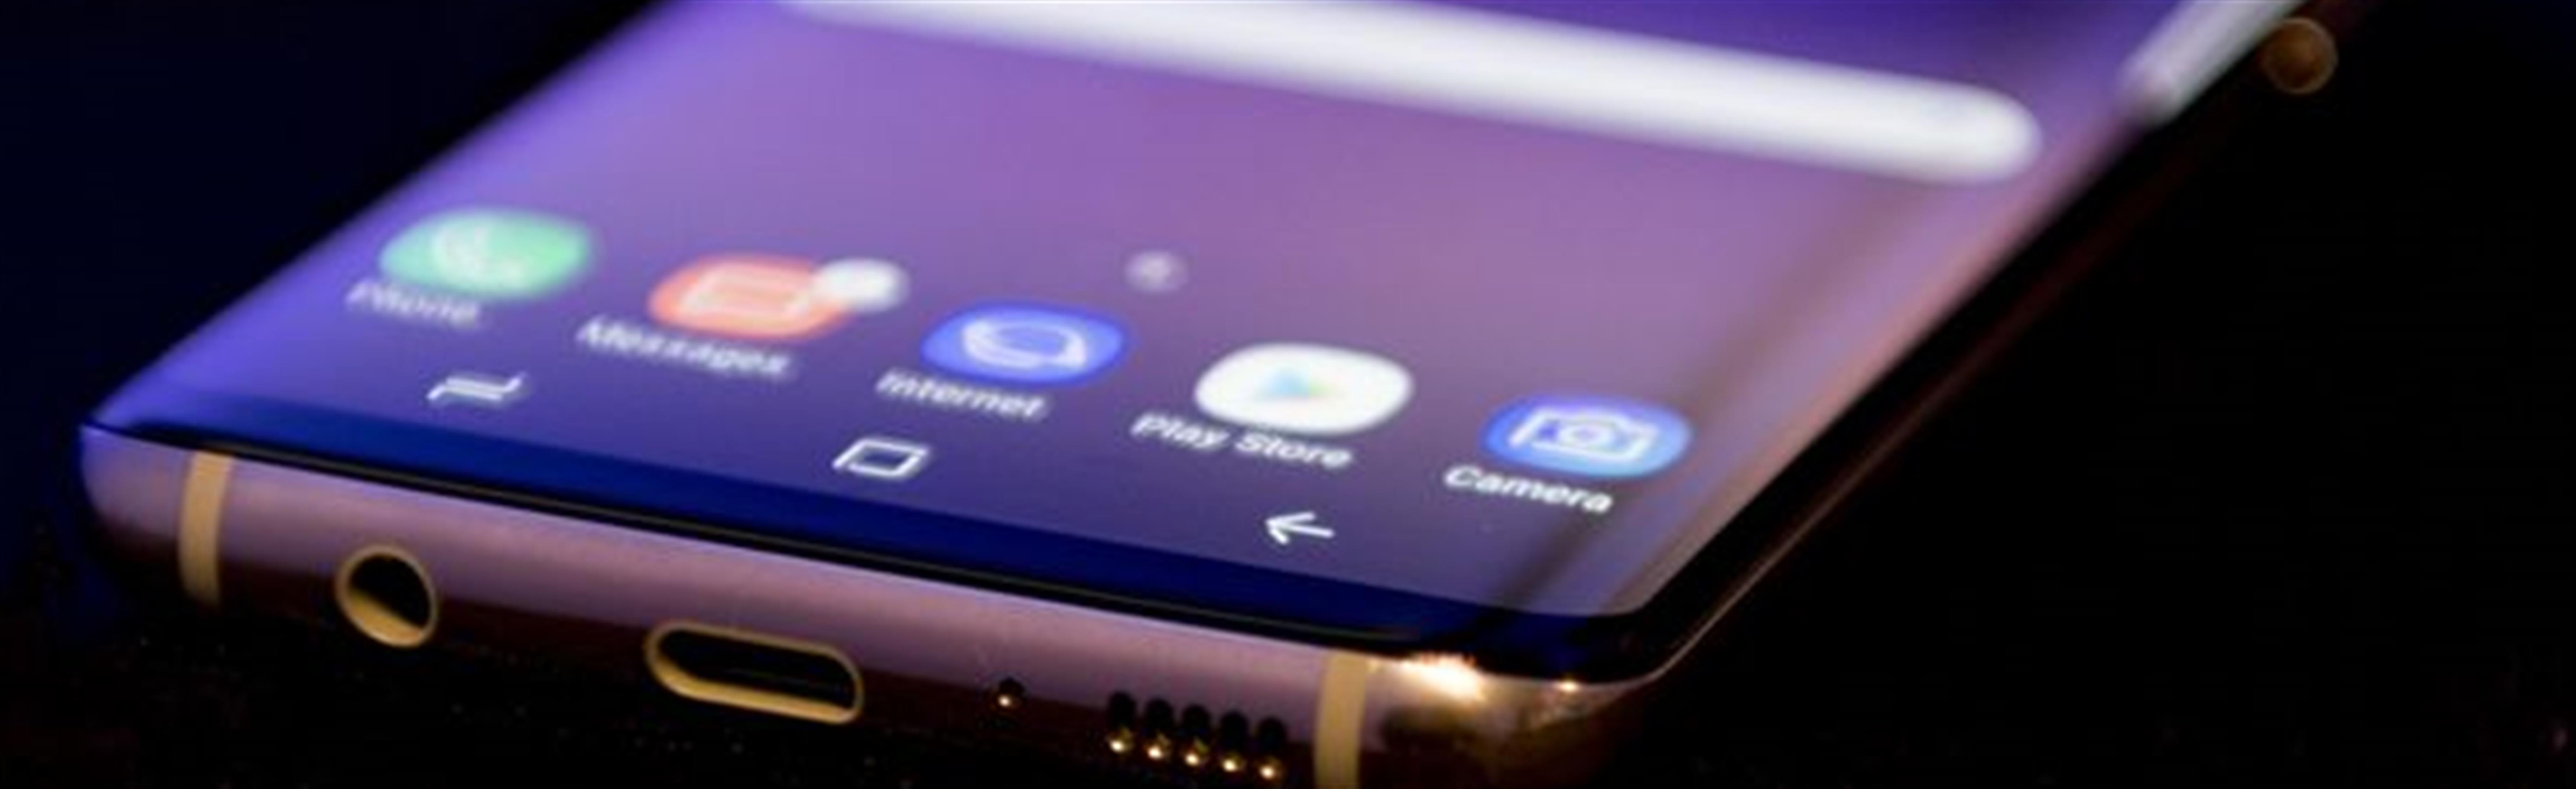 Samsung Galaxy S8 on Sale Now in US, Canada and Korea